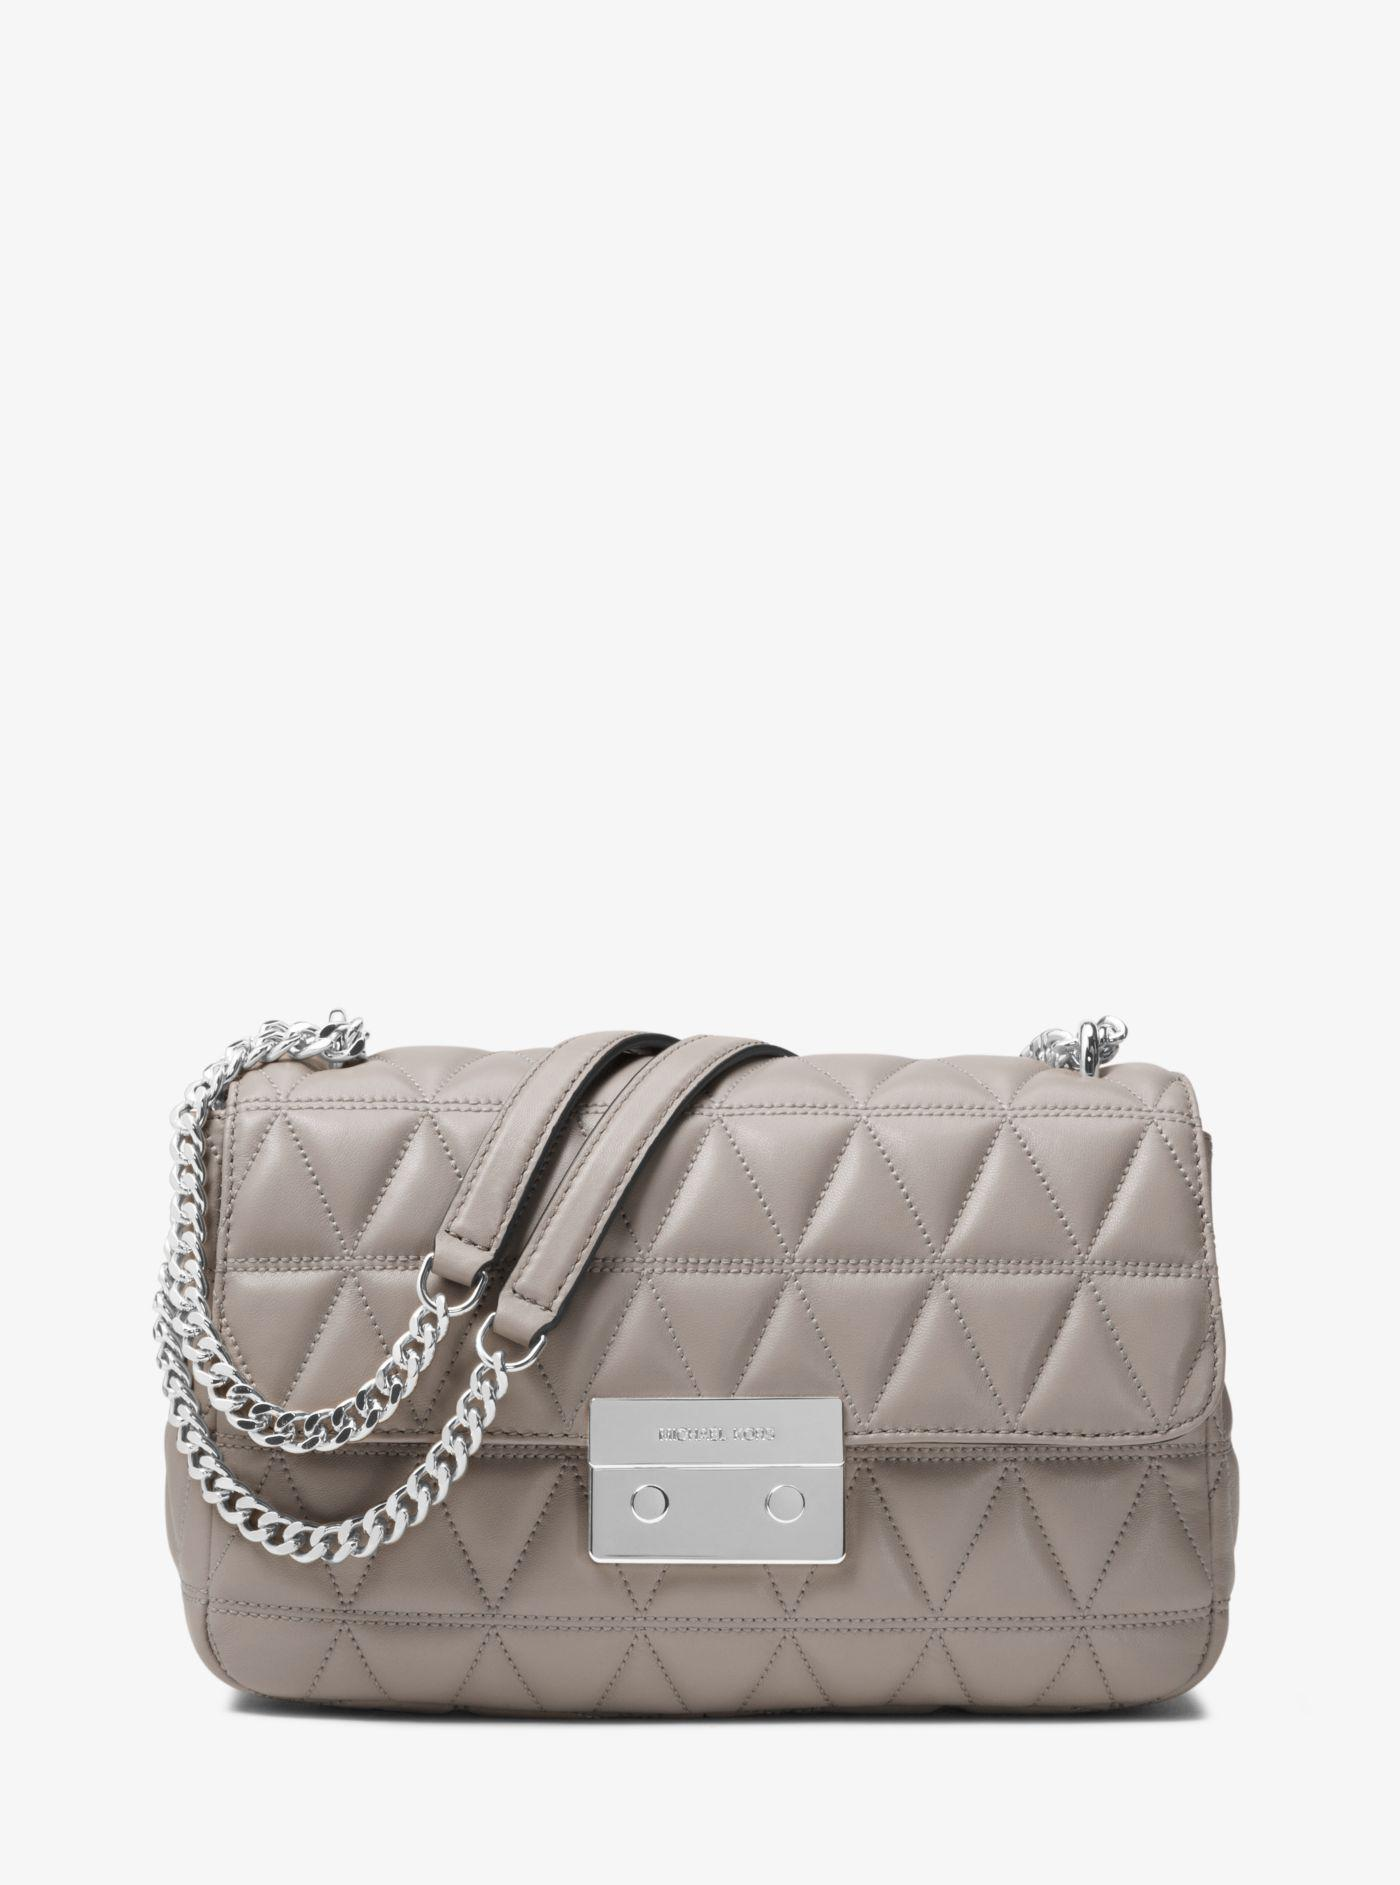 739e6fdc2b6 Michael Kors Sloan Large Quilted-leather Shoulder Bag in Gray - Lyst